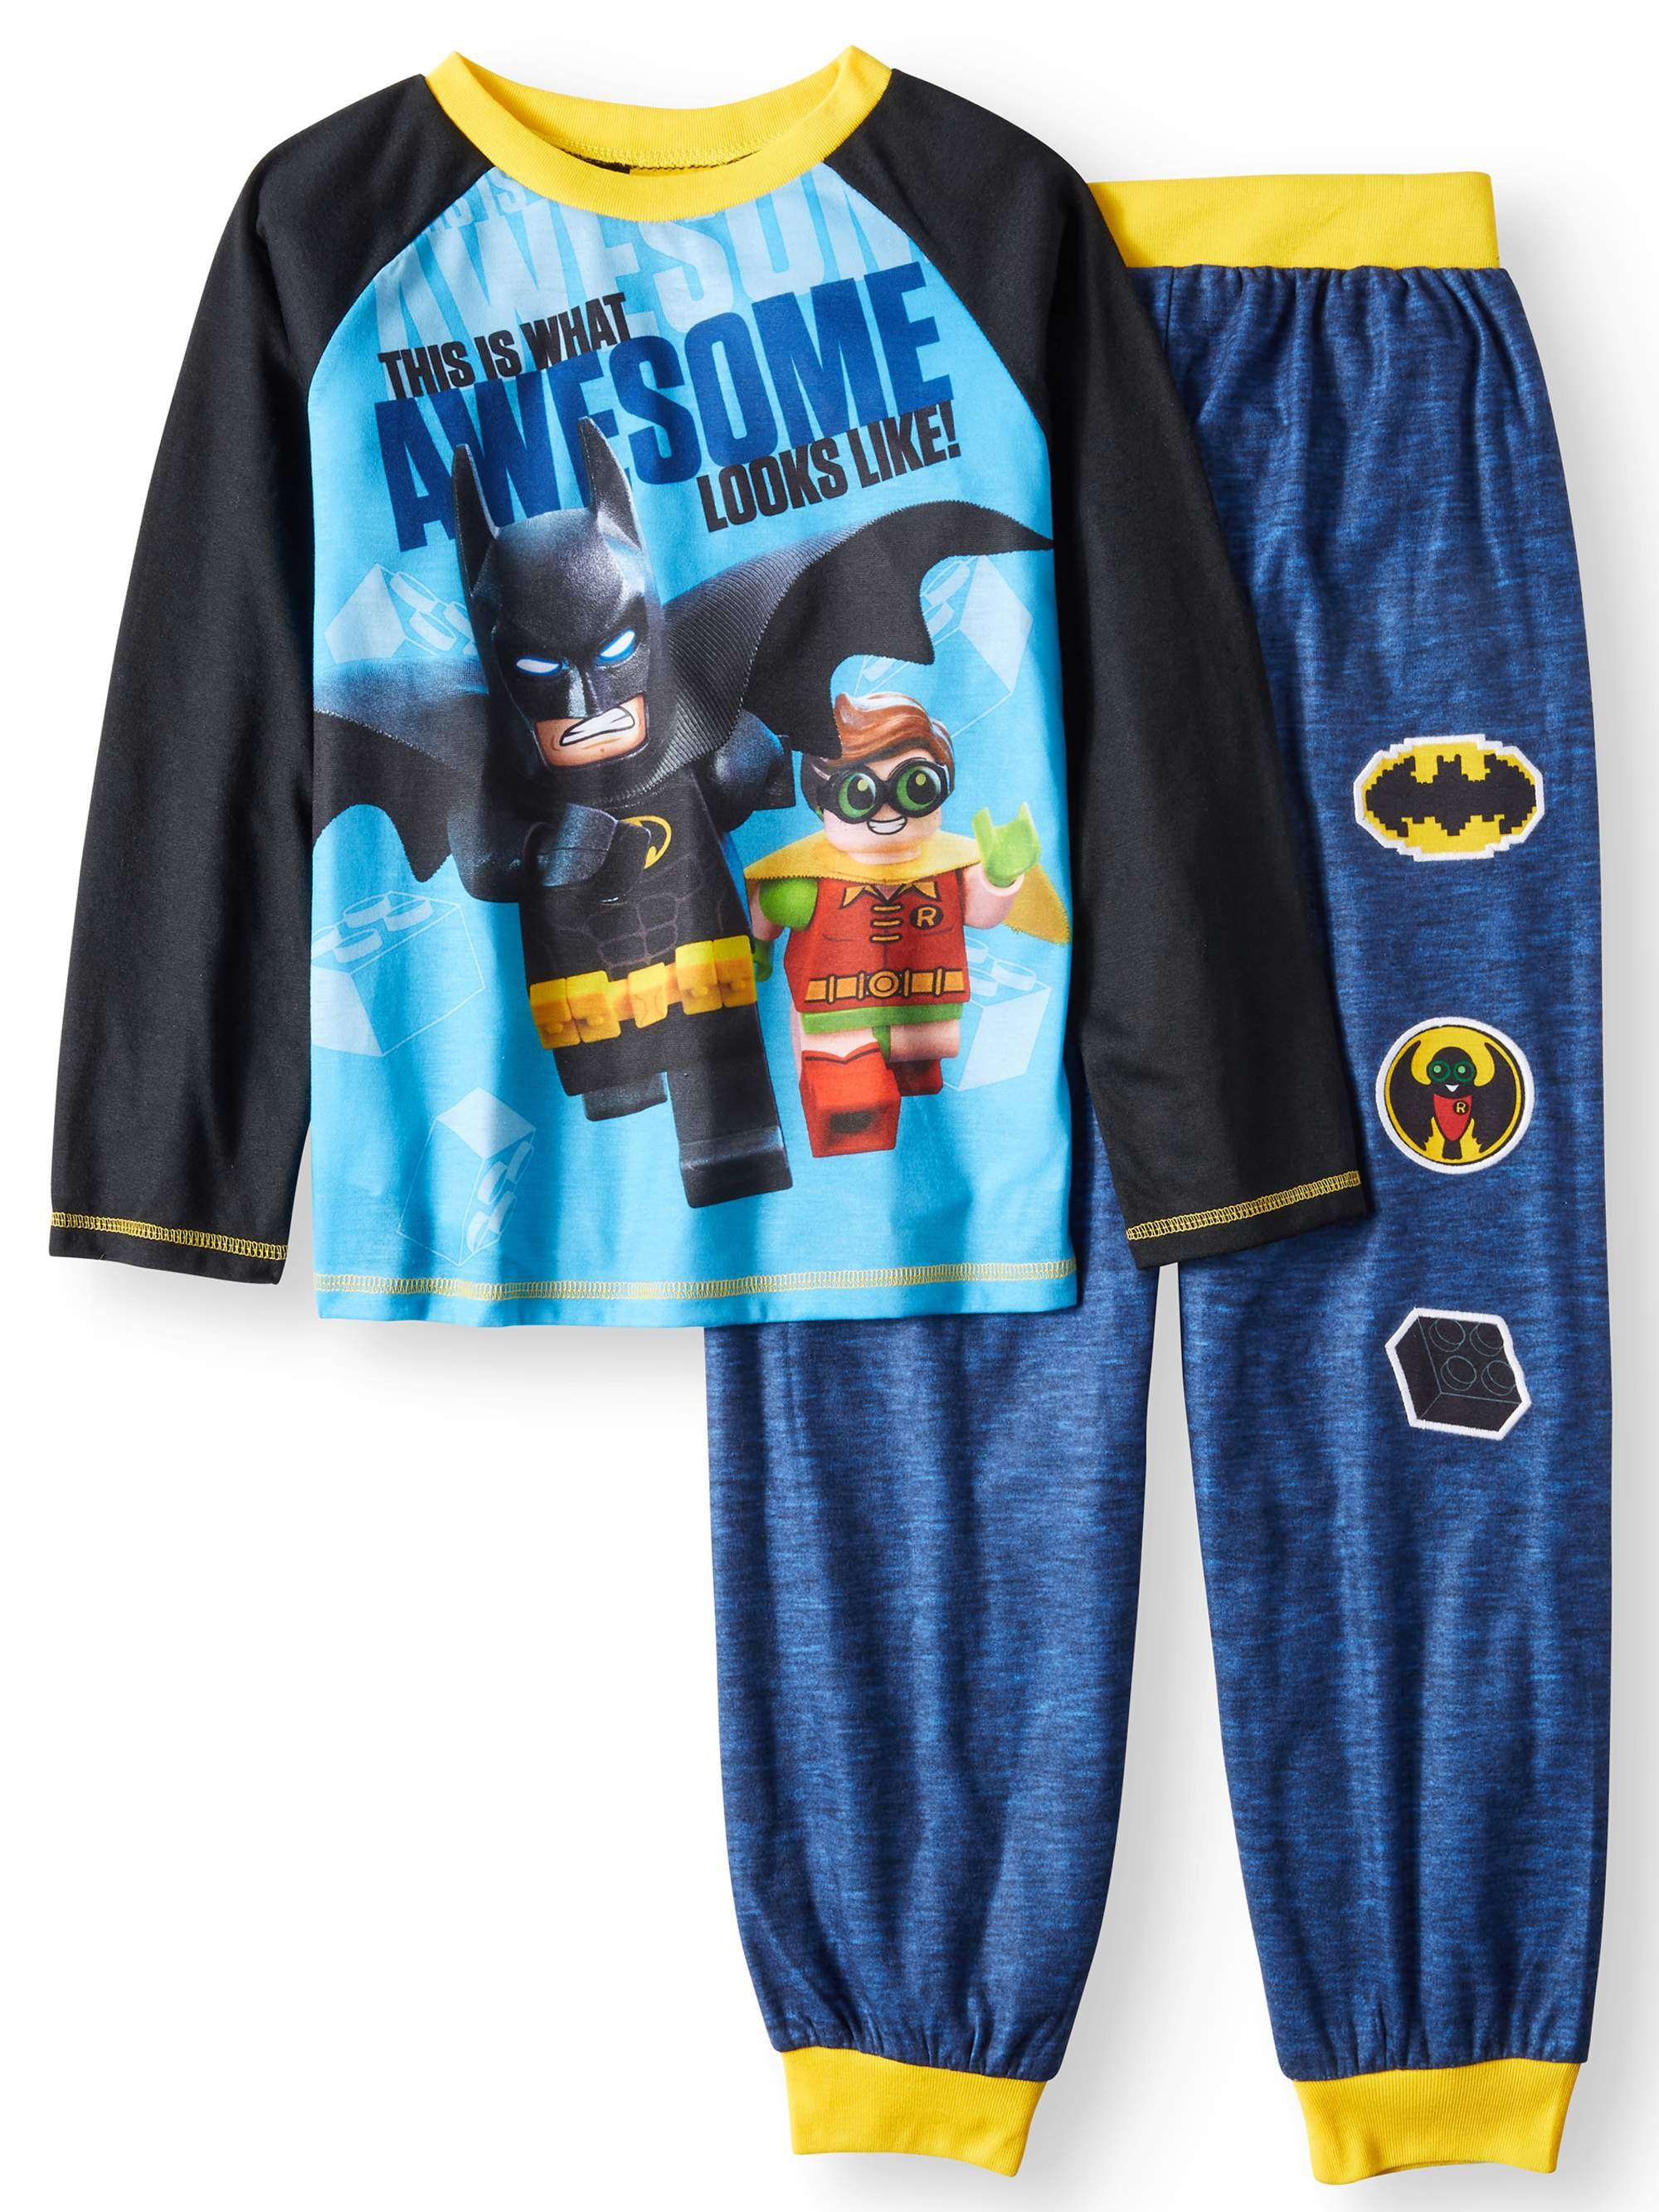 Lego Batman Graphic Raglan and Jogger 2 Piece Pajama Sleep Set (Big Boy & Little Boy)